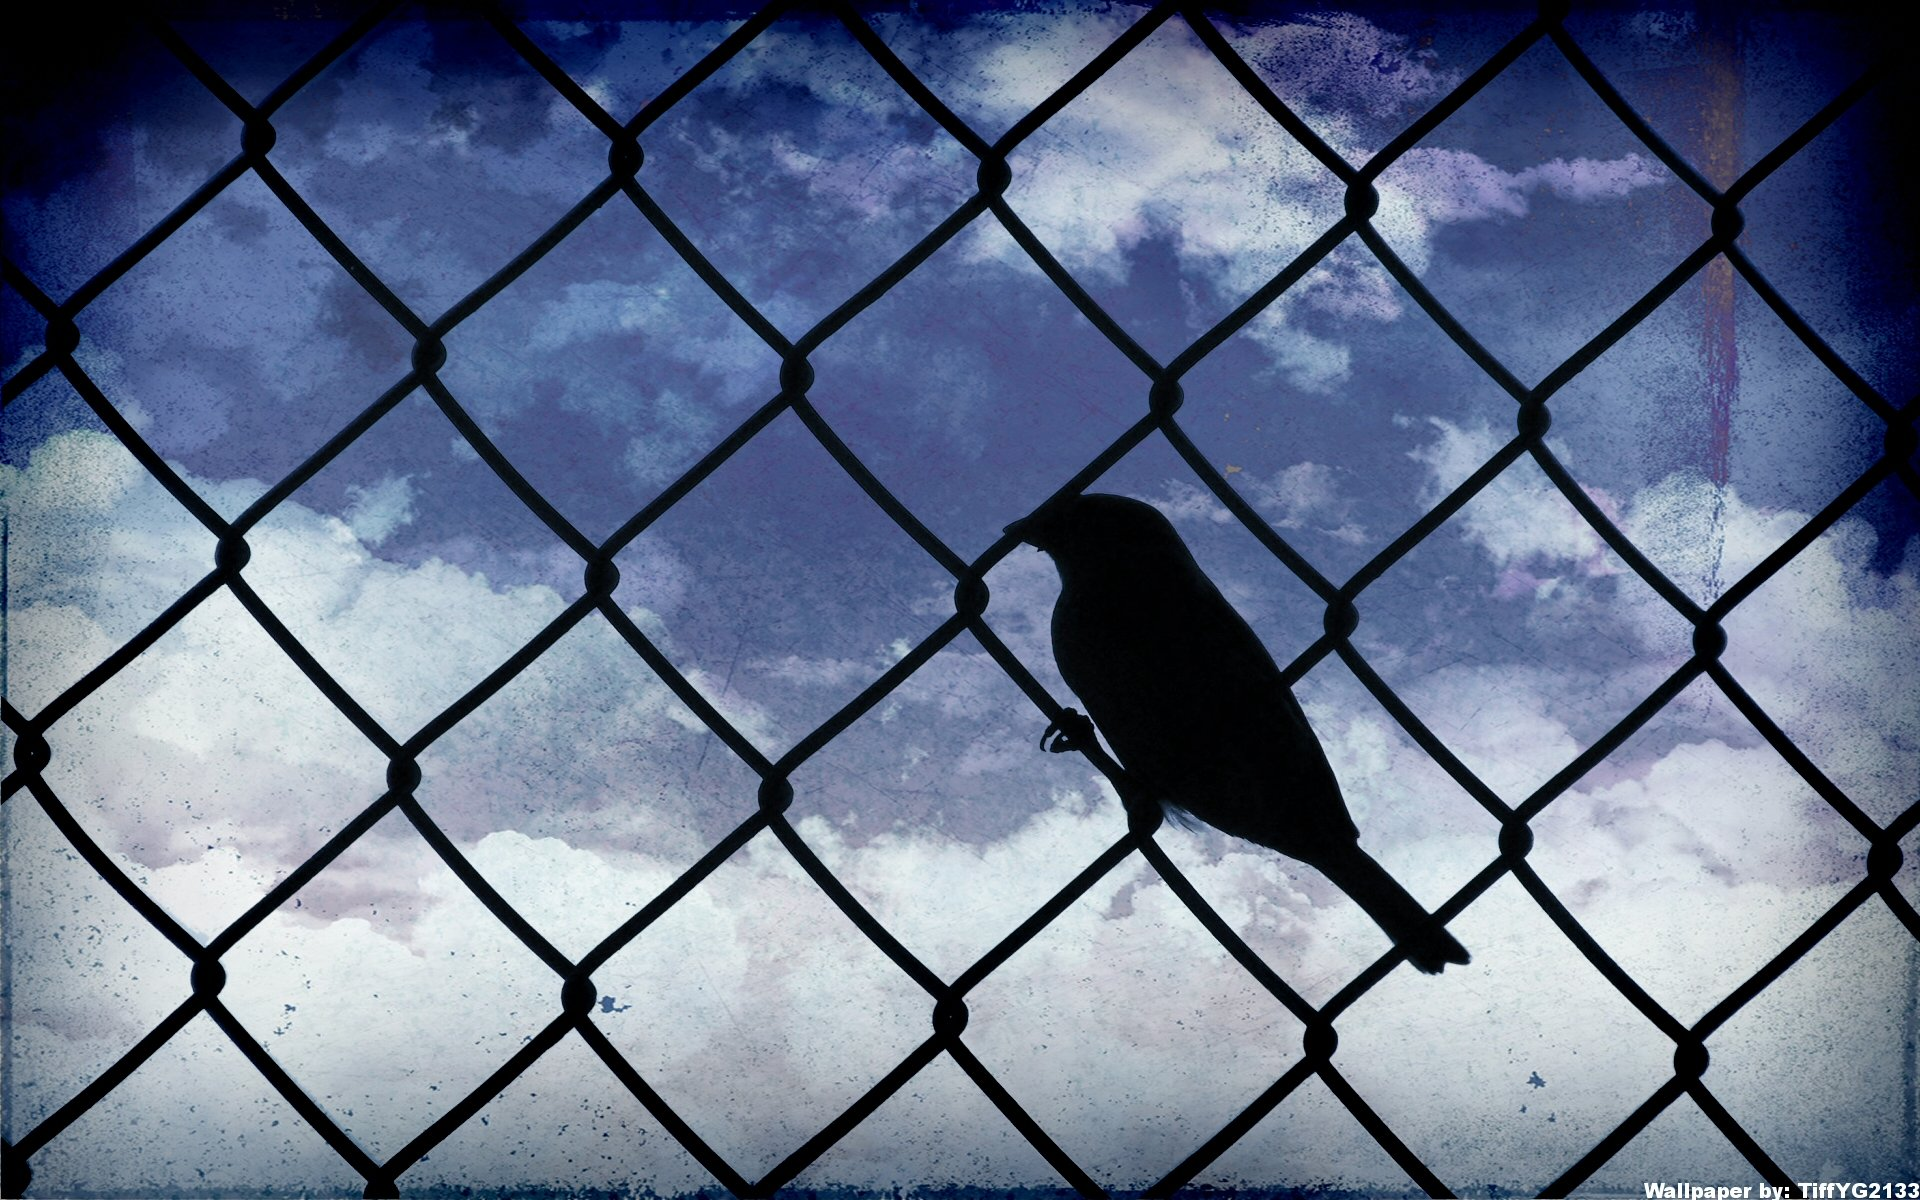 Chain Link Fence Wallpaper: Birds Silhouettes Skyscapes Chain Link Fence Wallpaper